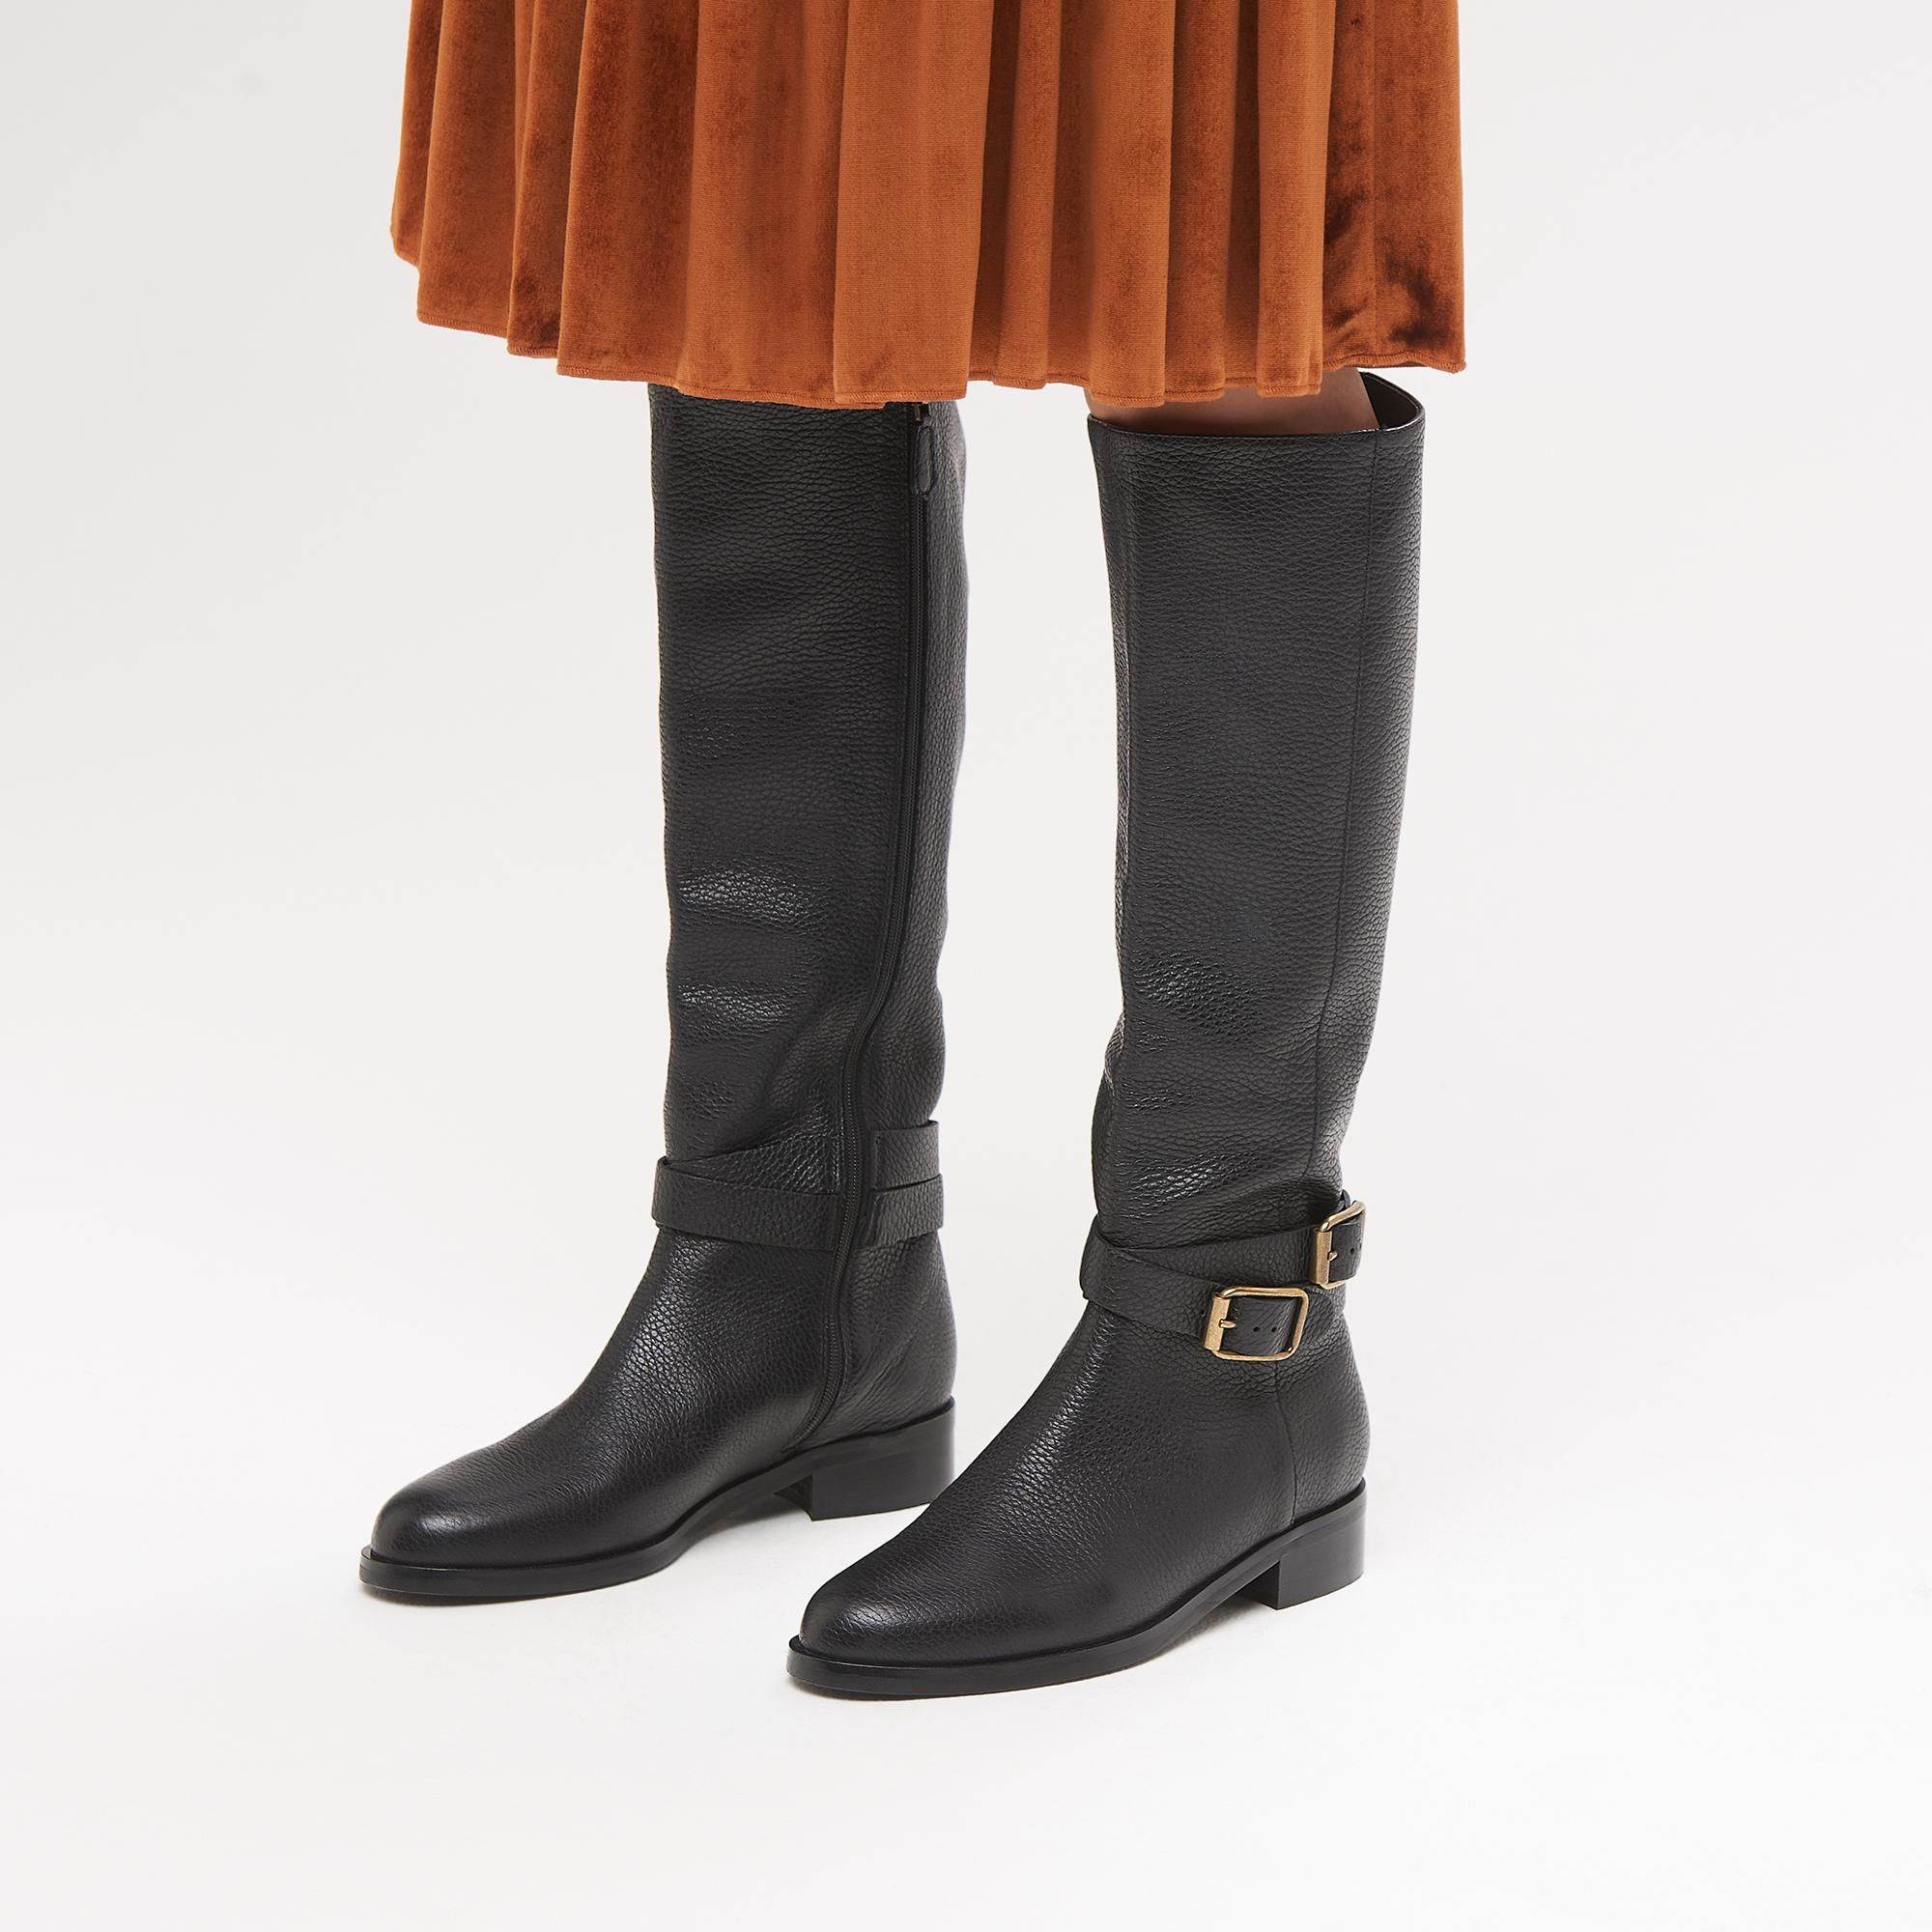 e4ba3a254e70 Brogan Black Leather Knee Boots